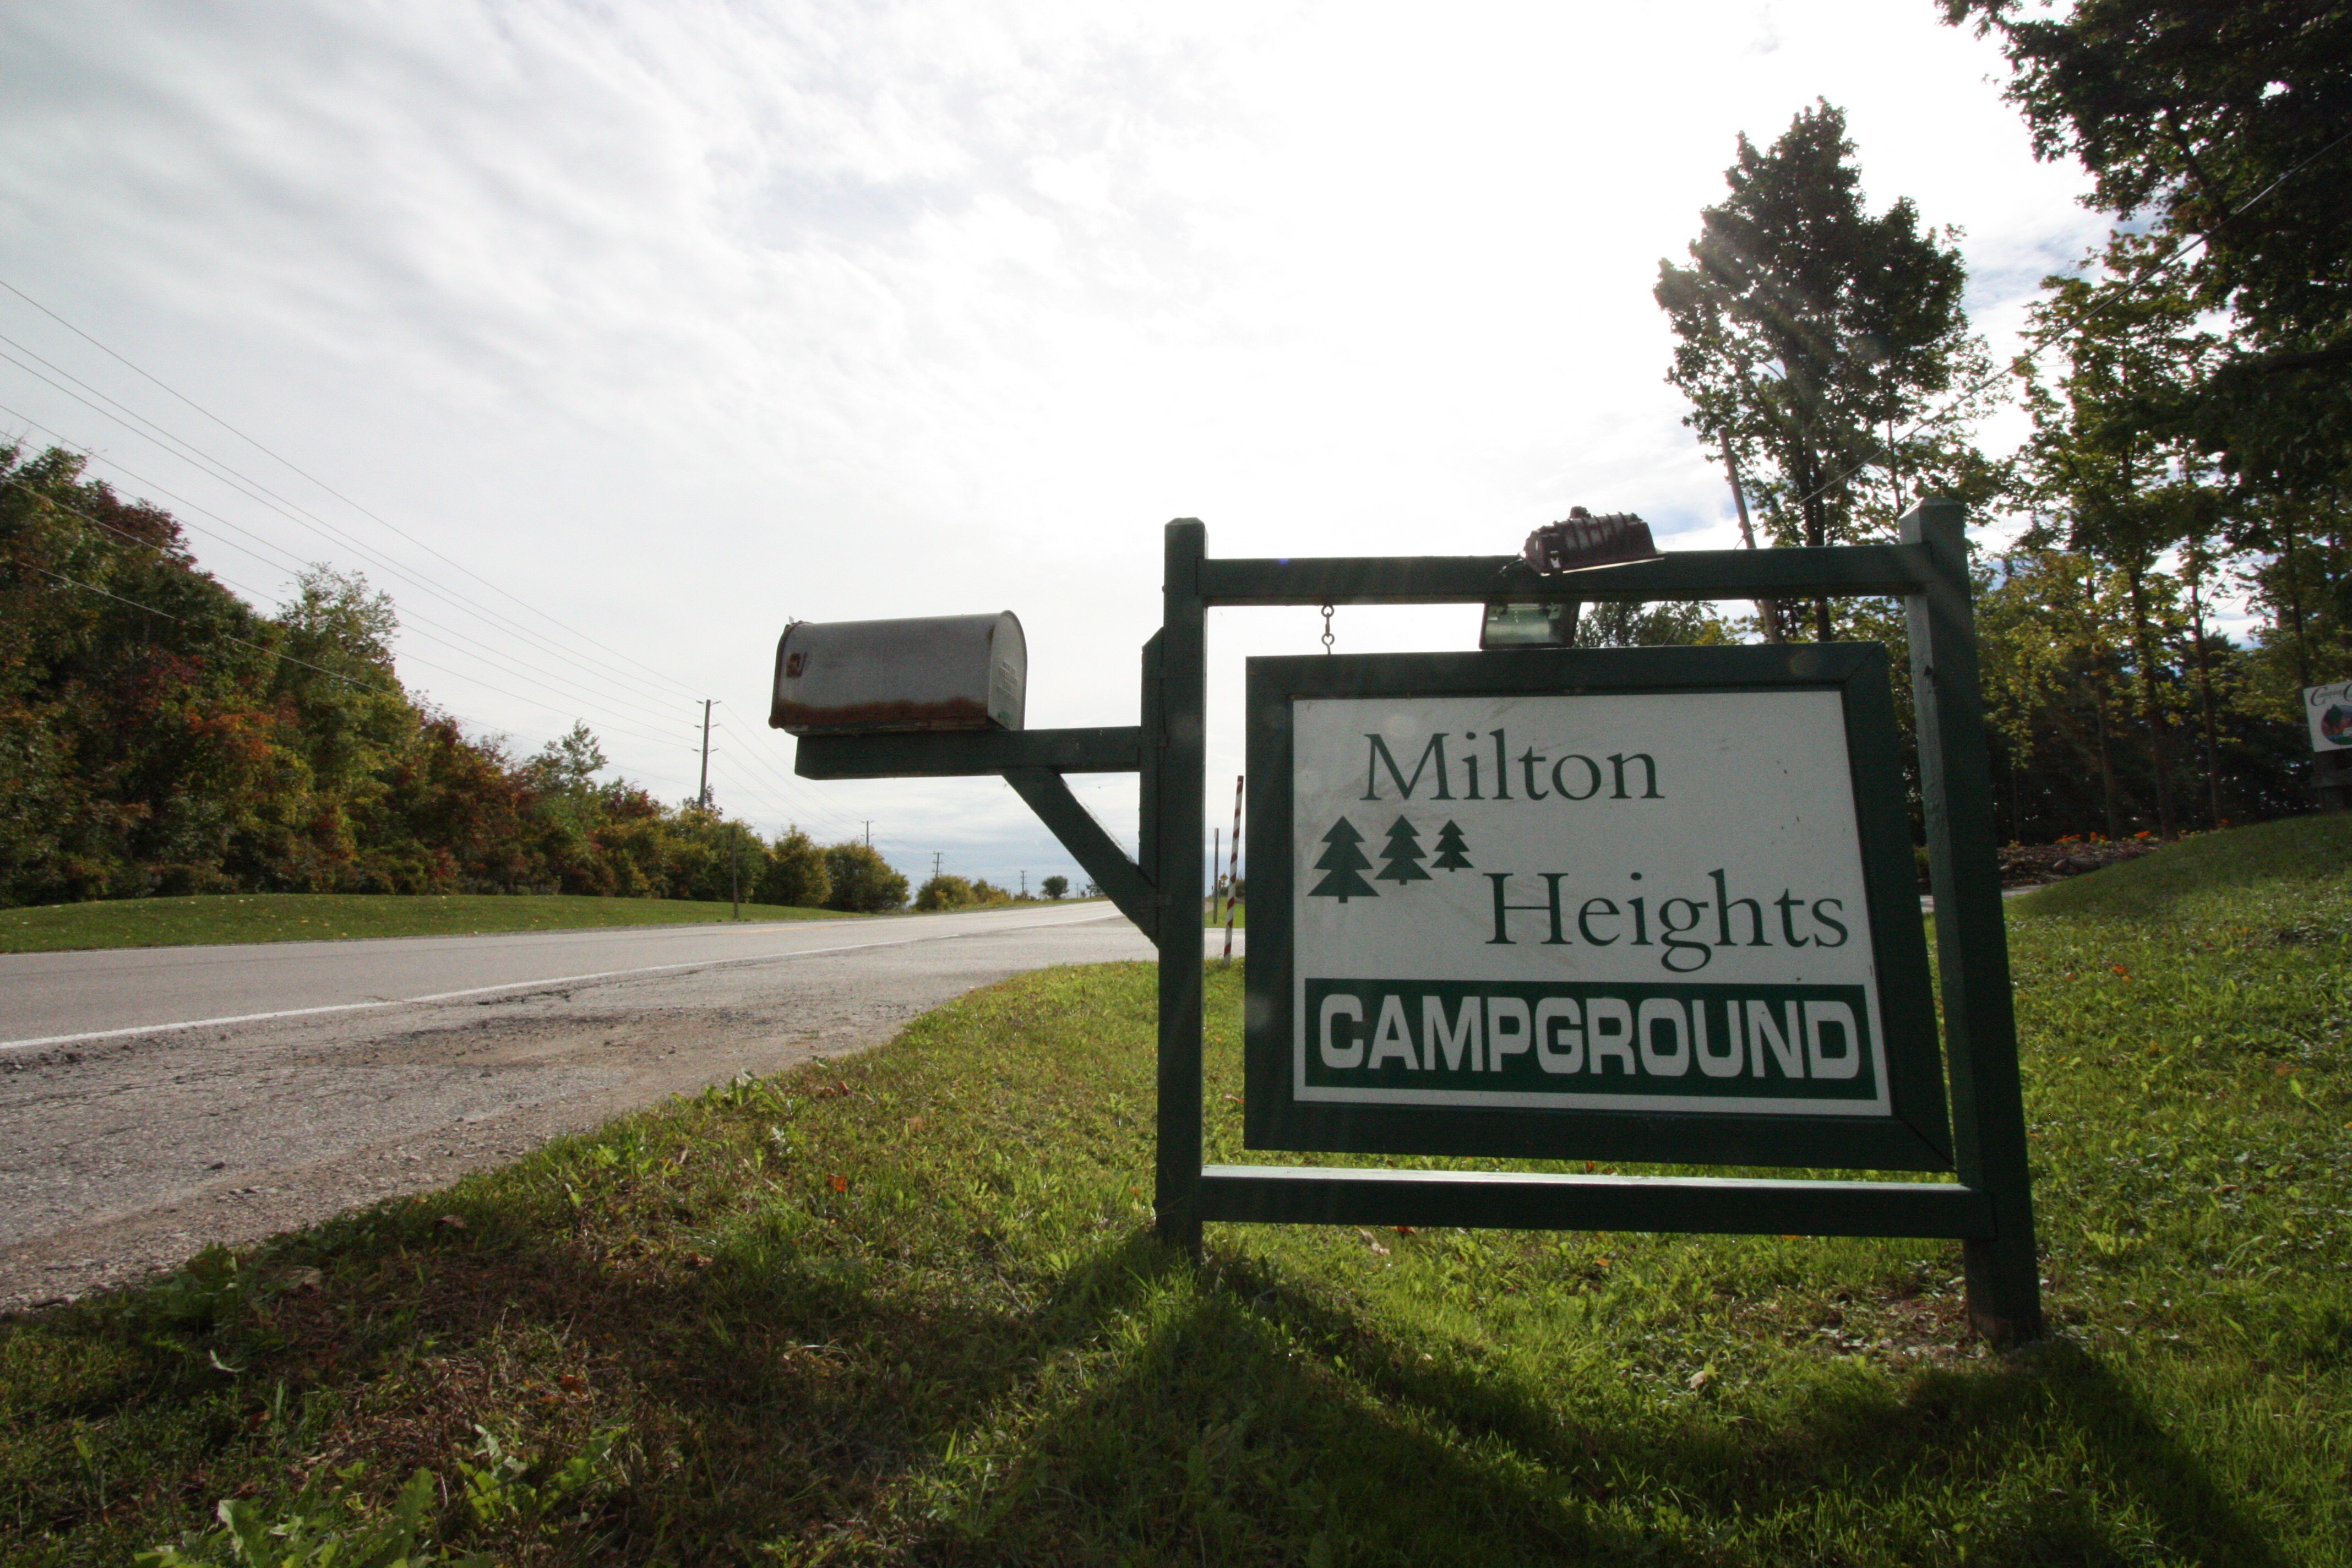 Milton Heights Campground - sign